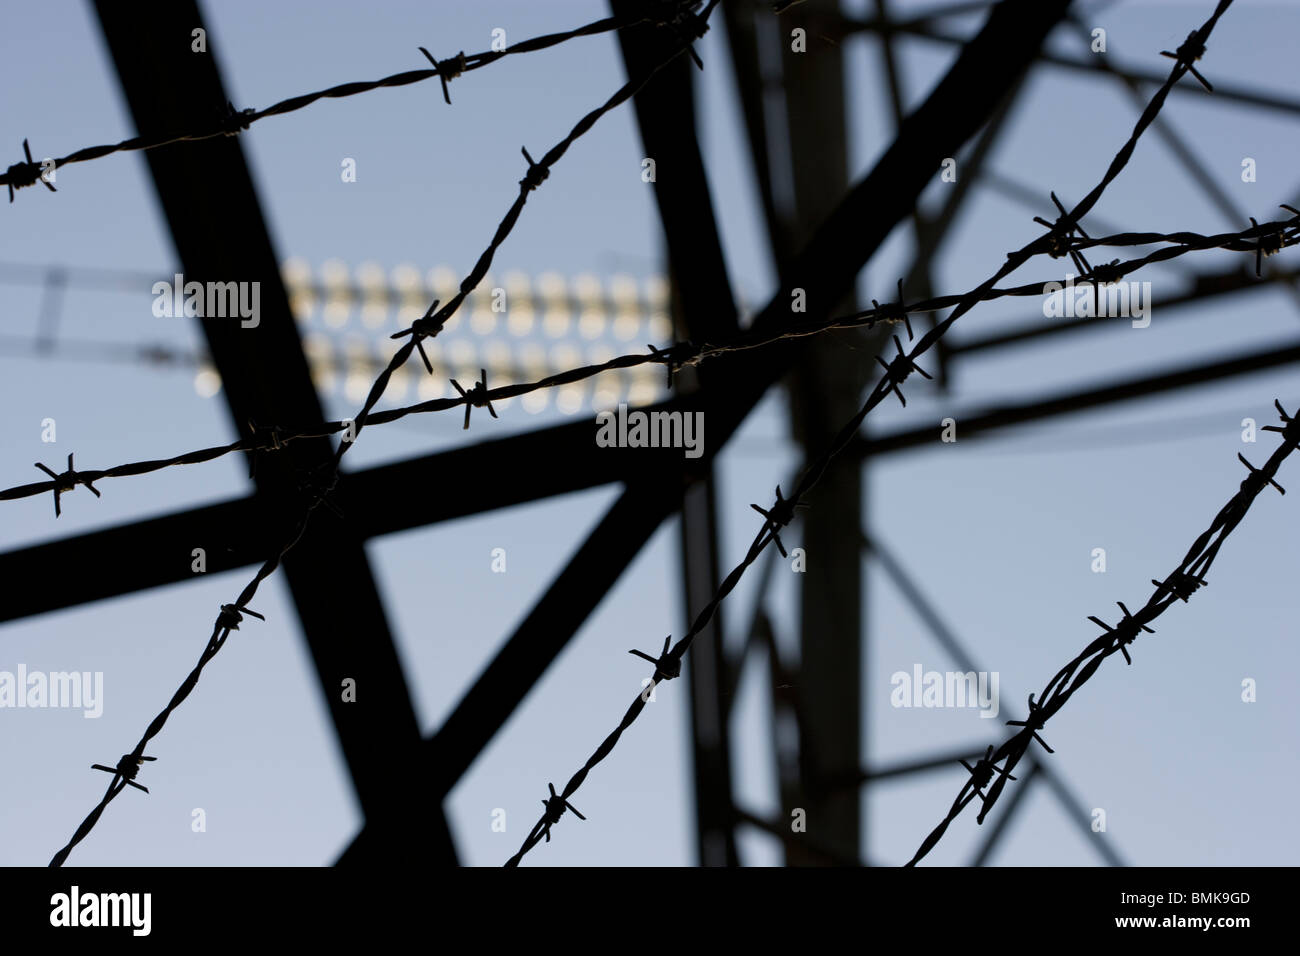 Looking up at an electricity pylon - Stock Image